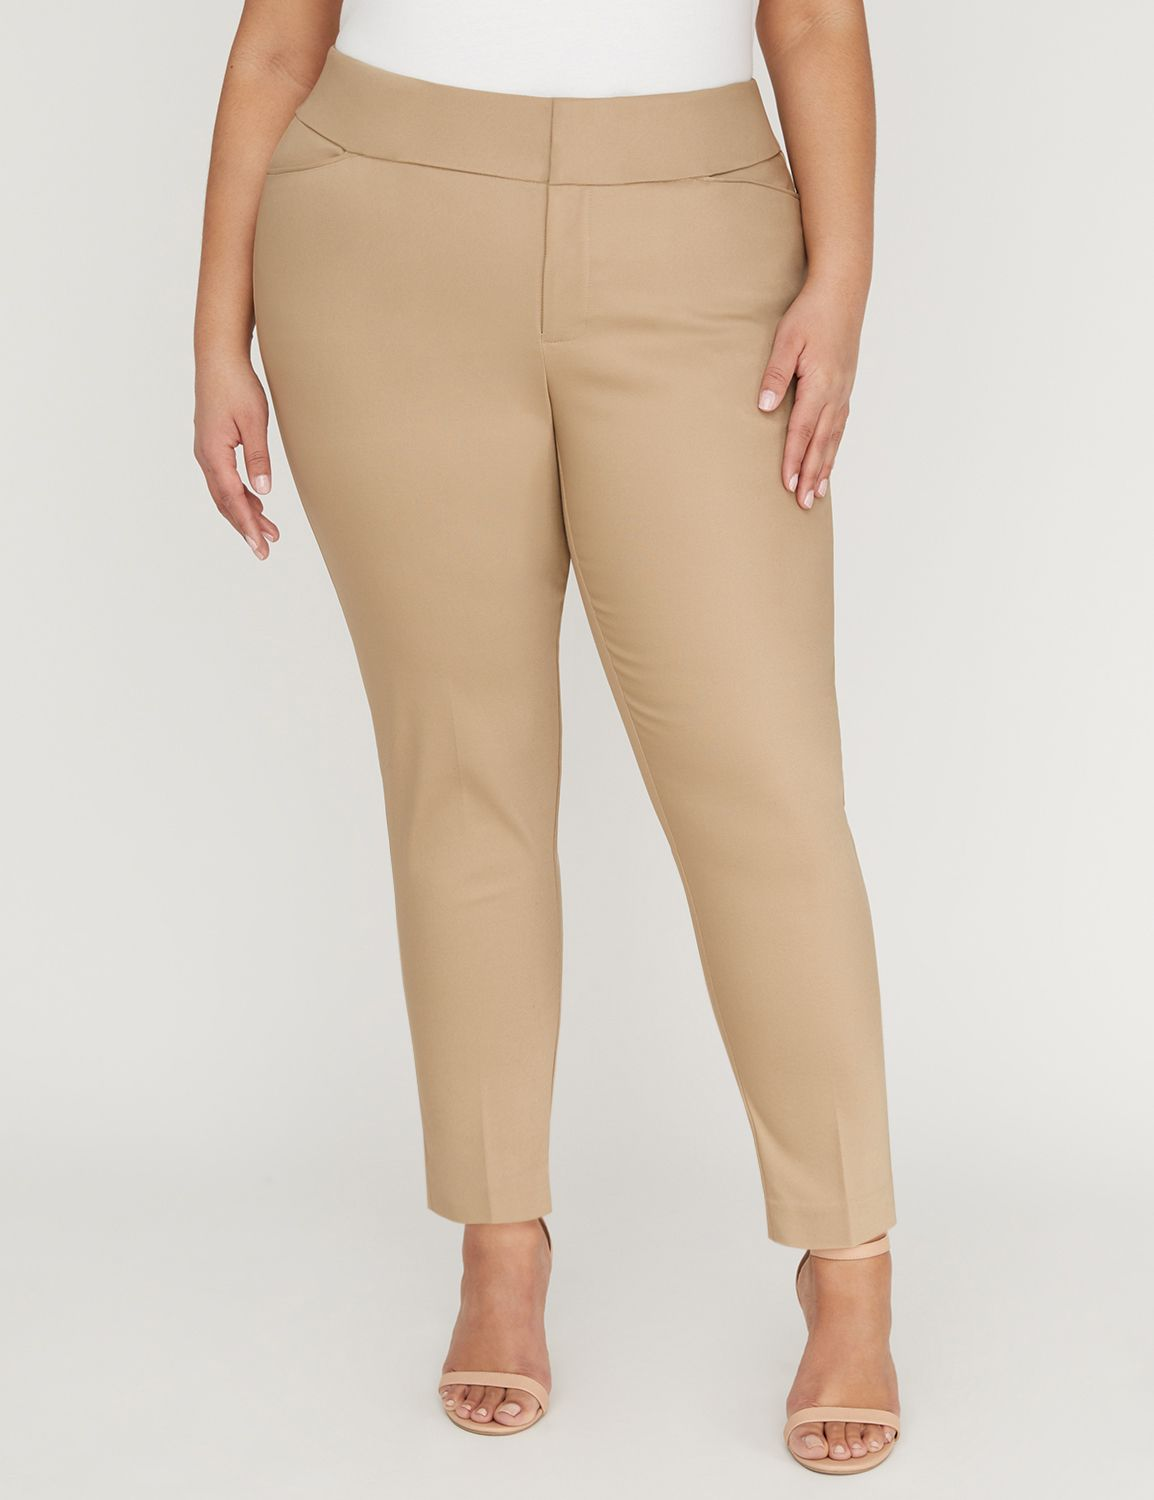 Updated Modern Stretch Ankle Pant 1087775 MODERN STRETCH WIDE WAISTBA MP-300097620